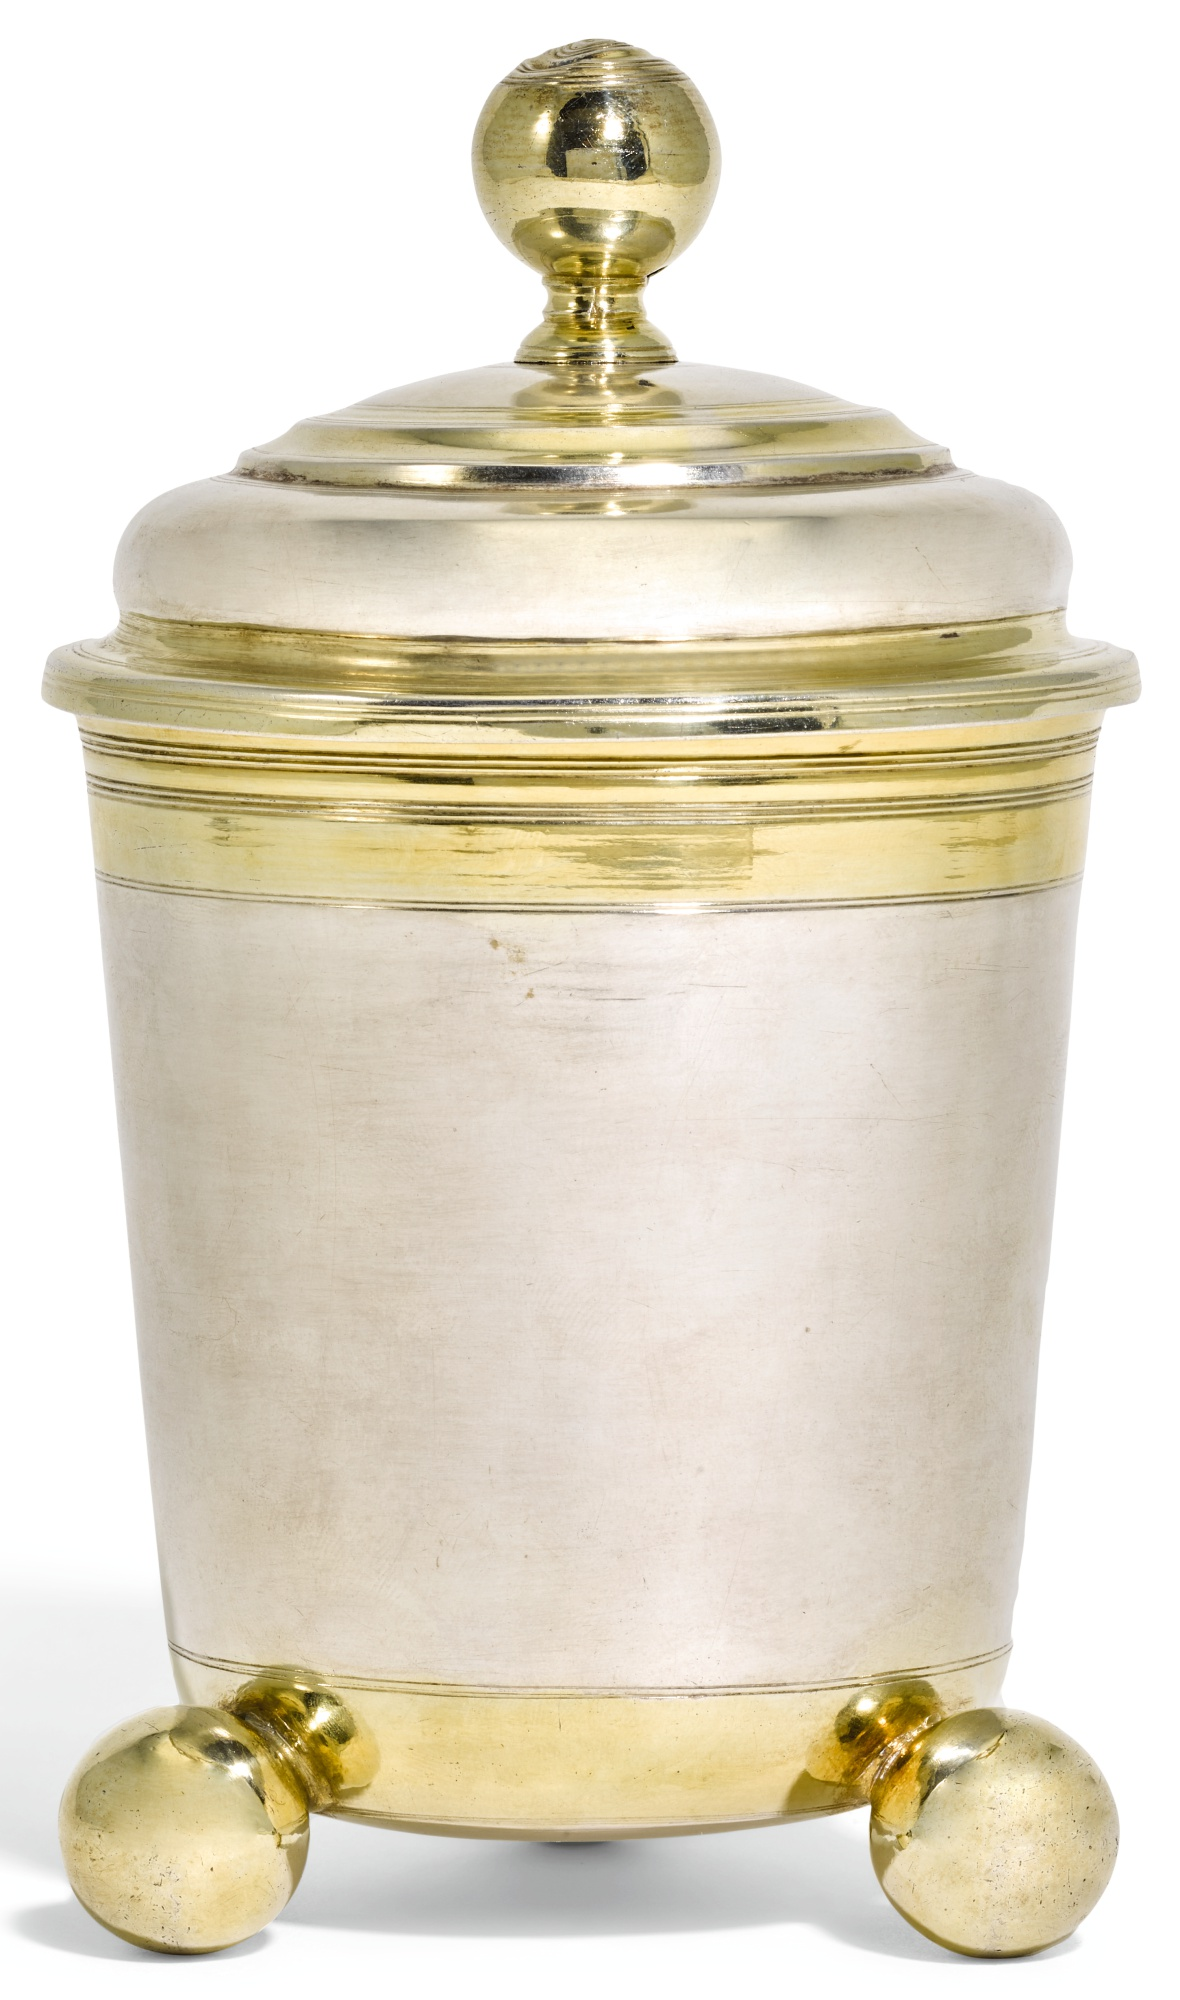 A LARGE FRANCO-GERMAN PARCEL-GILT SILVER BEAKER AND COVER, JOSIAS DIFFENBECHER, STRASBOURG, CIRCA 1680